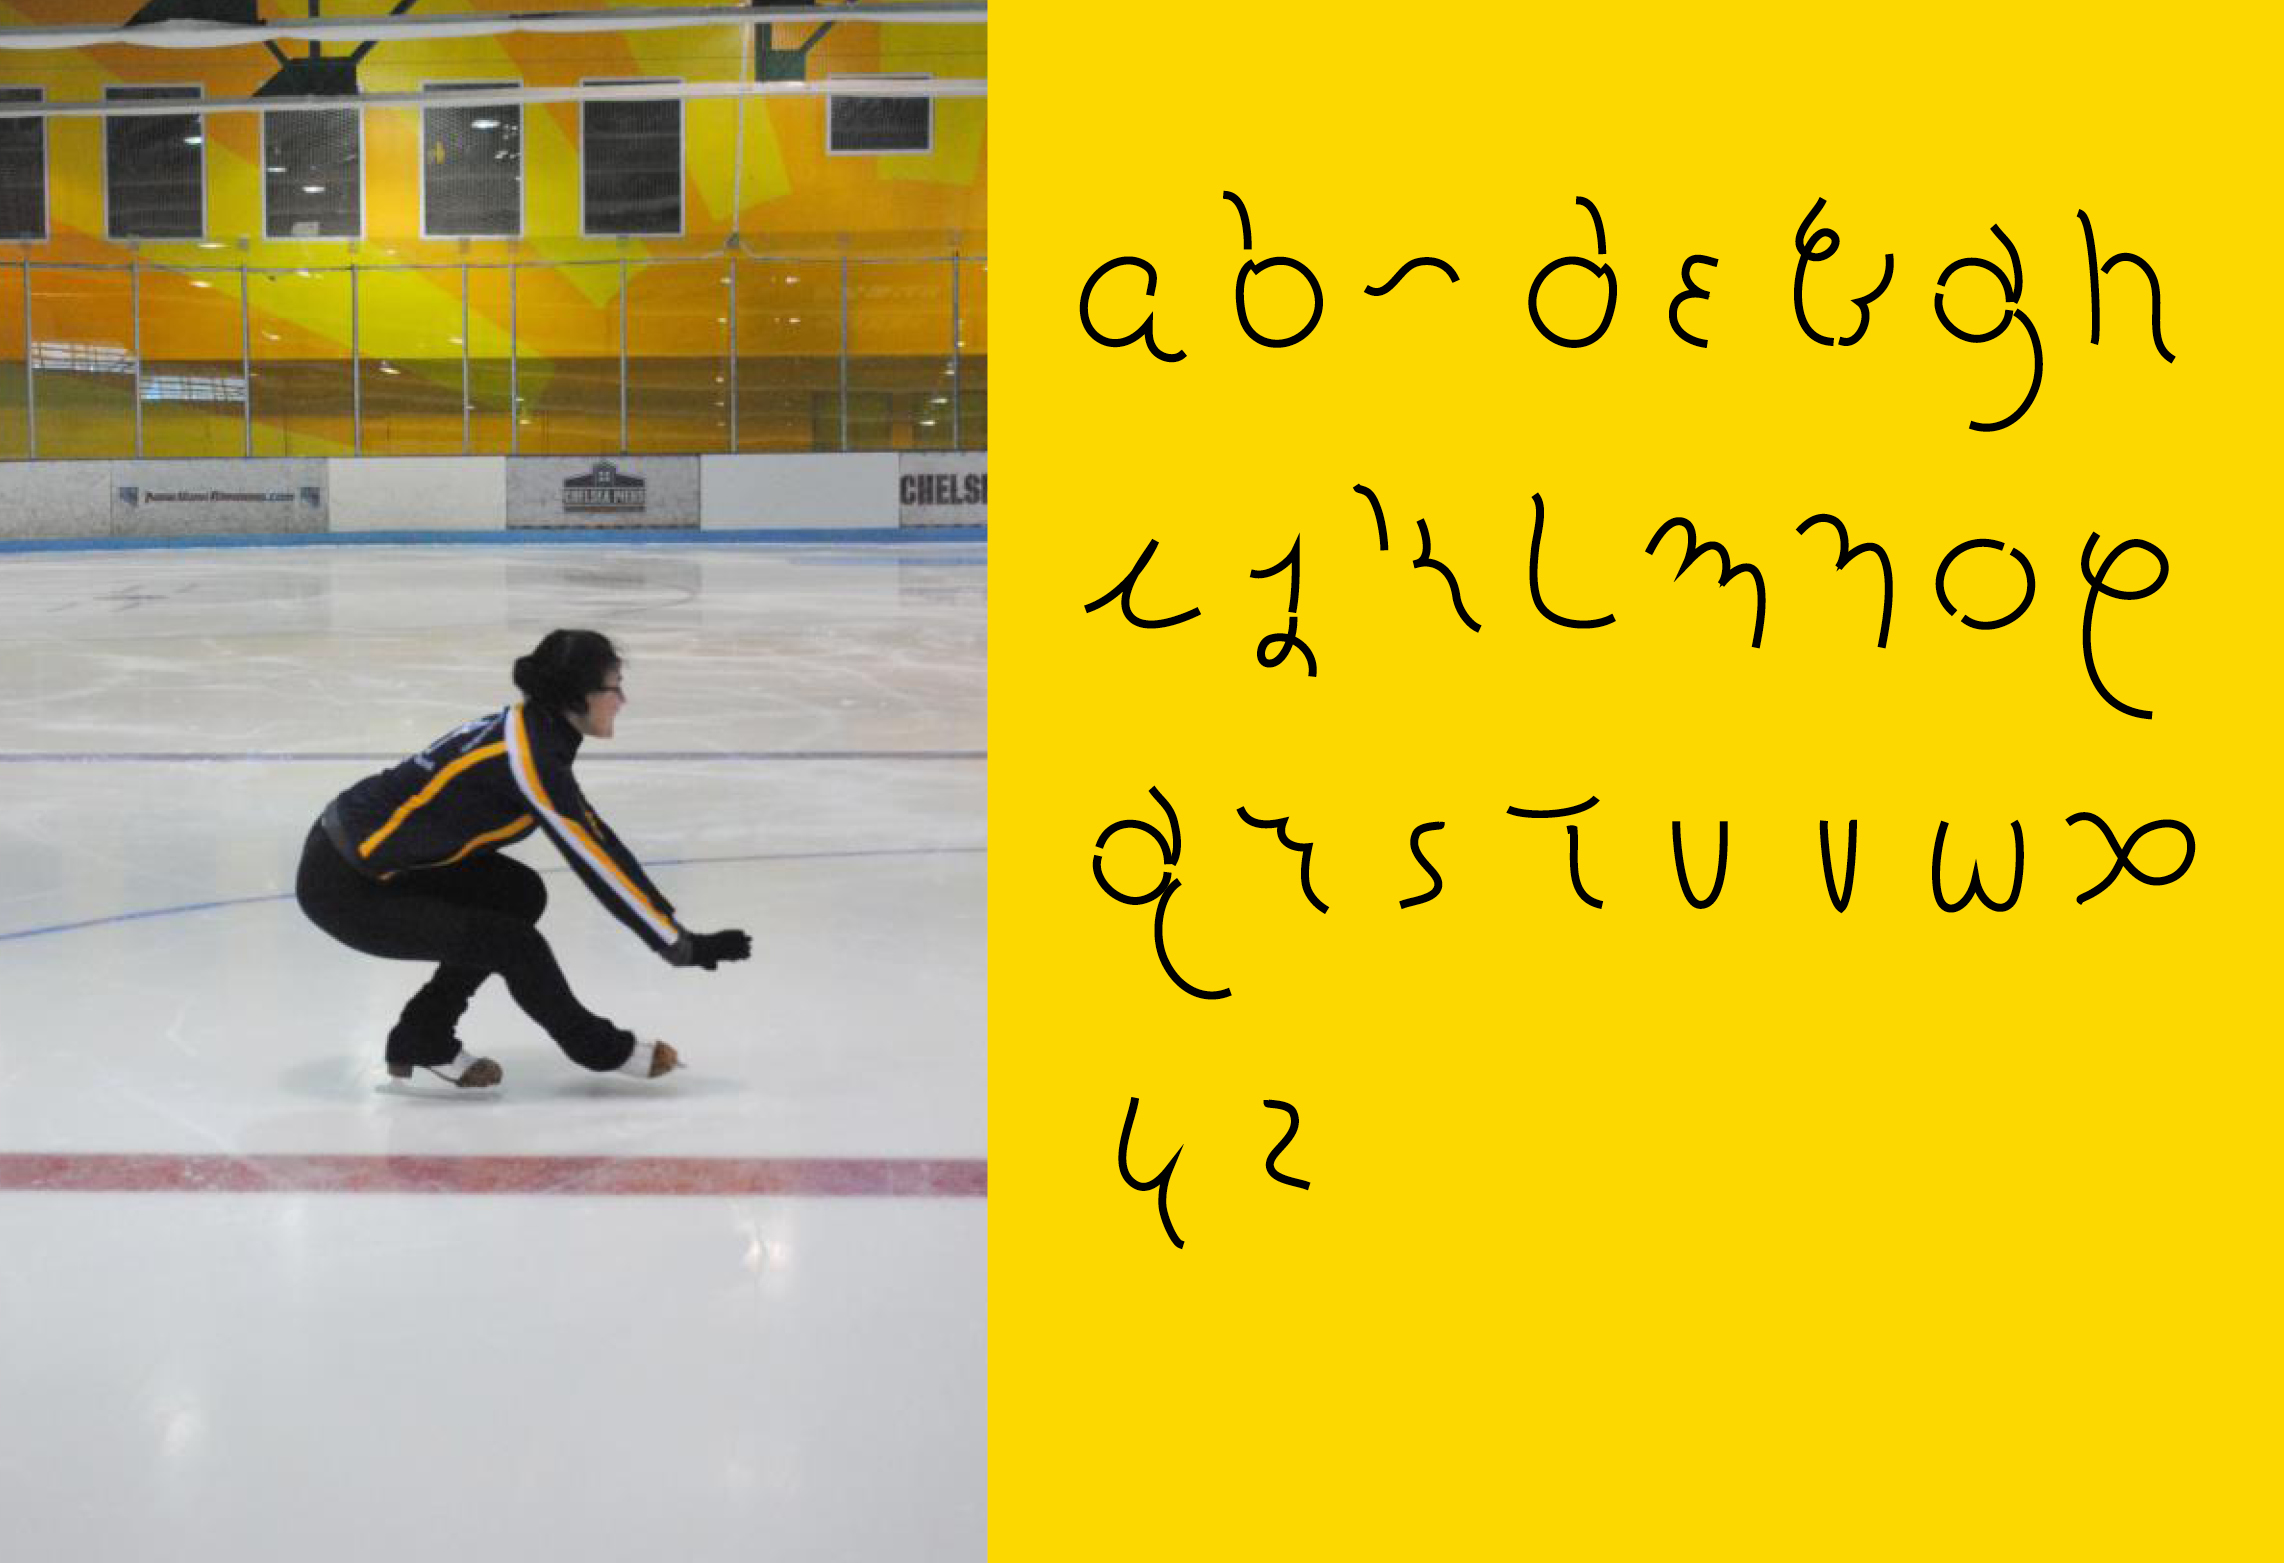 Font and Cassandra Skating